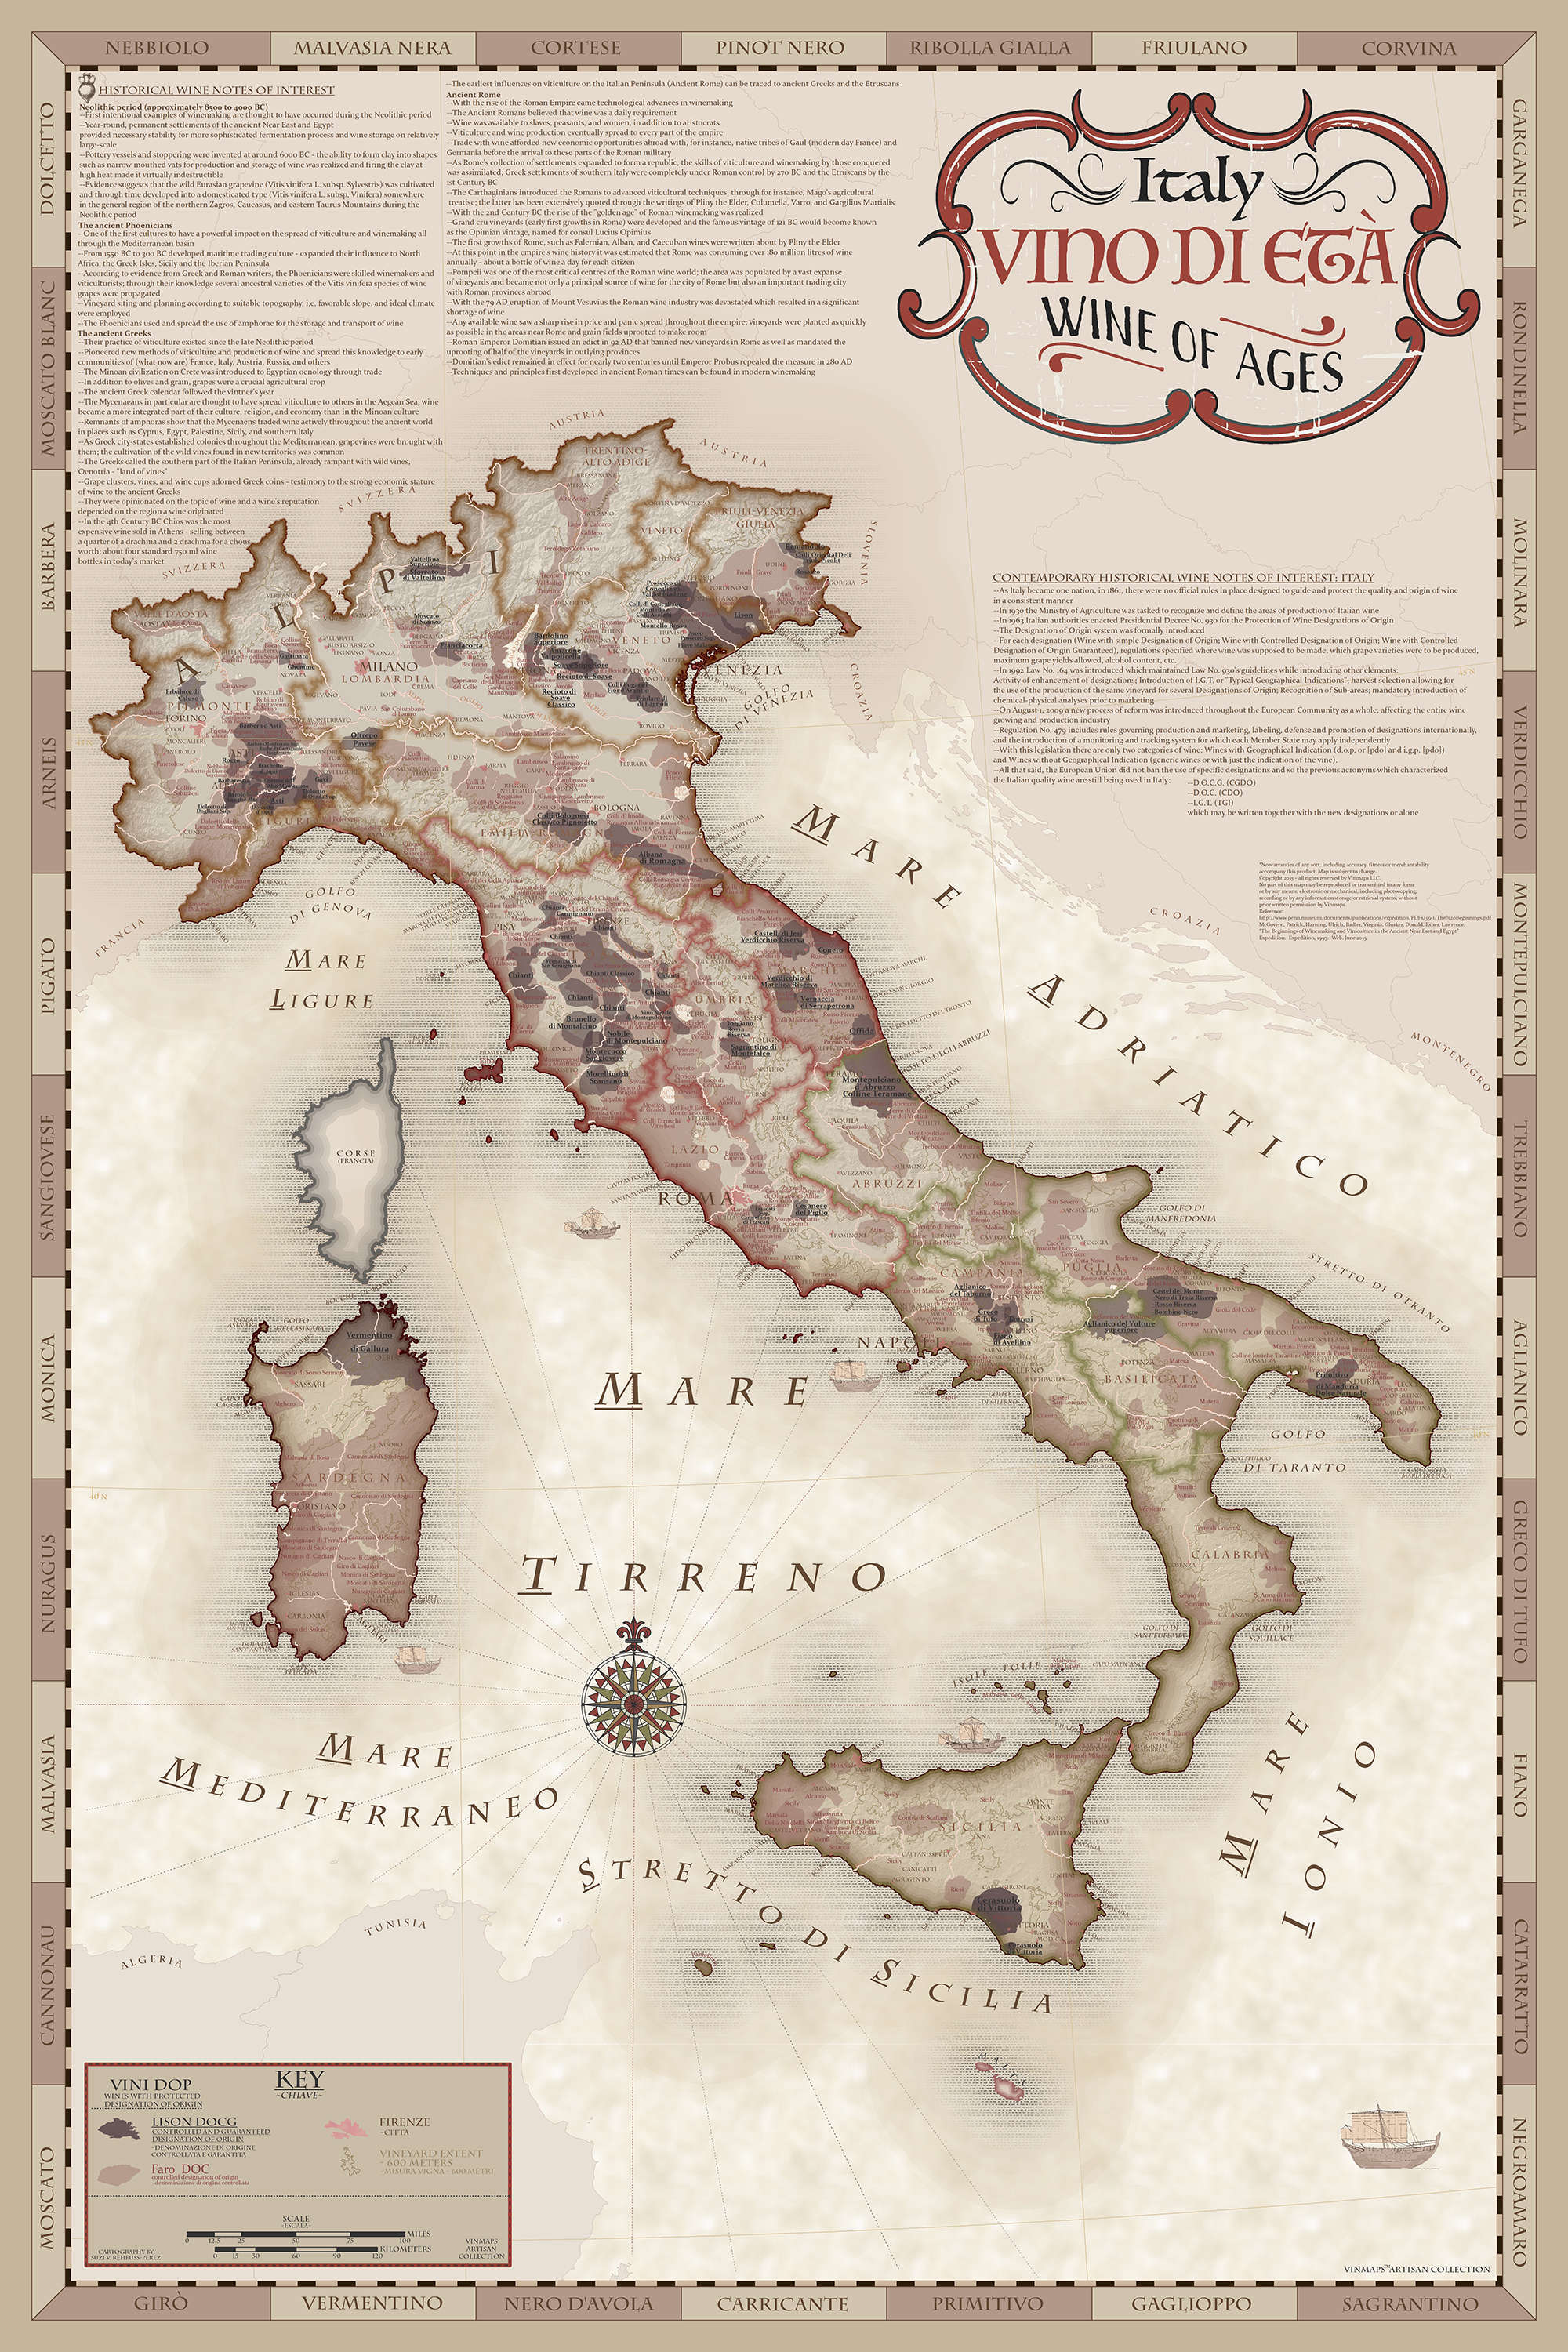 Artisan Collection Archives - VinMaps® on ancient maps of italy, cumae italy, online map venice italy, old map of florence italy, old maps prints, old style map of italy, old material, early people of italy, old naples italy, old world maps murals, old world cartography, old world style fabric, detailed map florence italy, towns in bari italy, old world rome, historical maps of italy, printable map italy, 13th century italy, old world italian, tunisia italy,